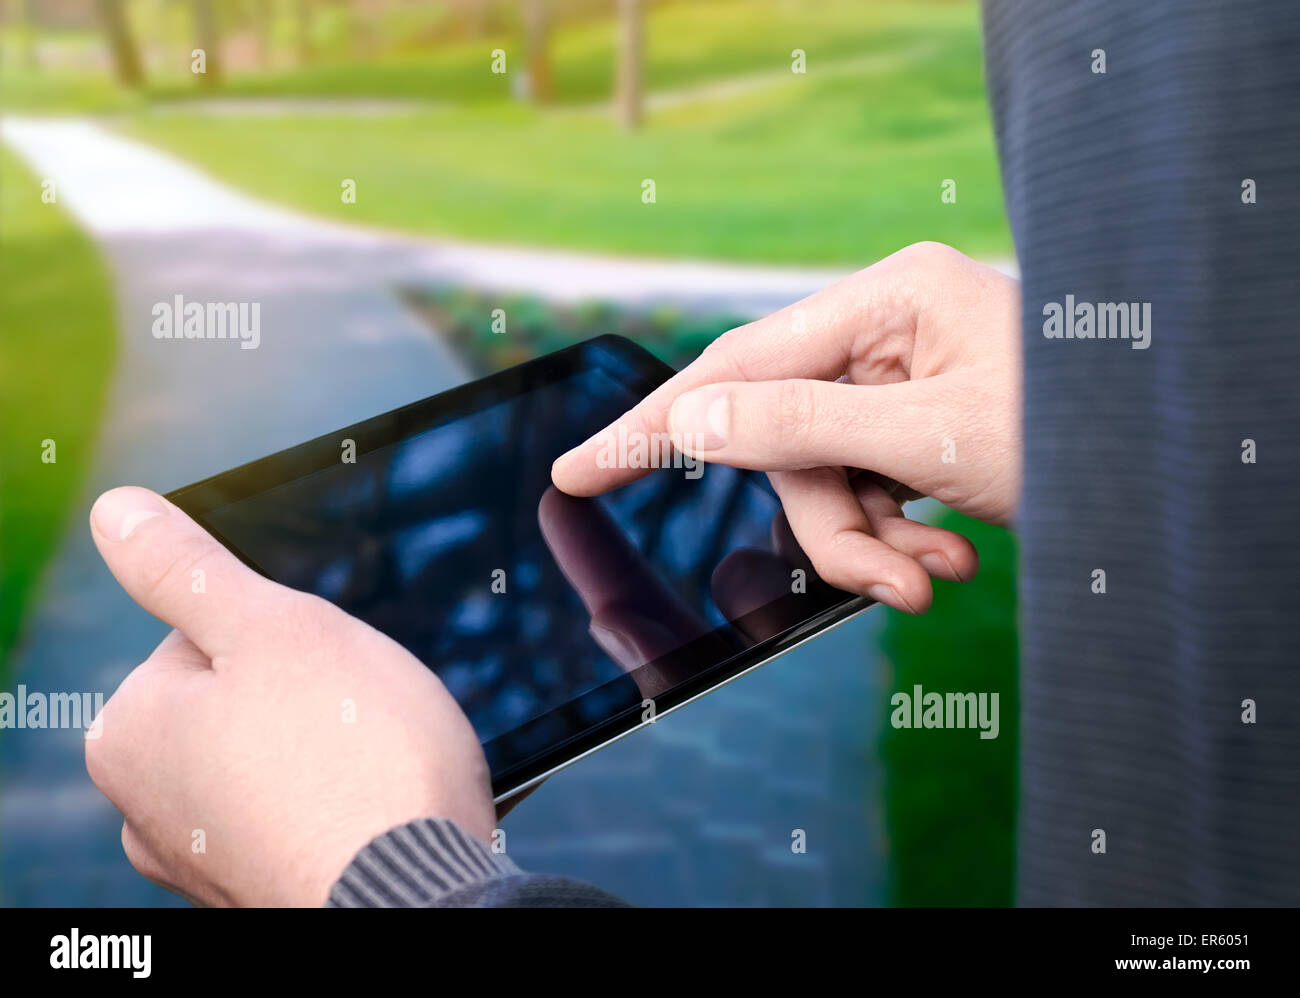 Man using a tablet computer - Stock Image